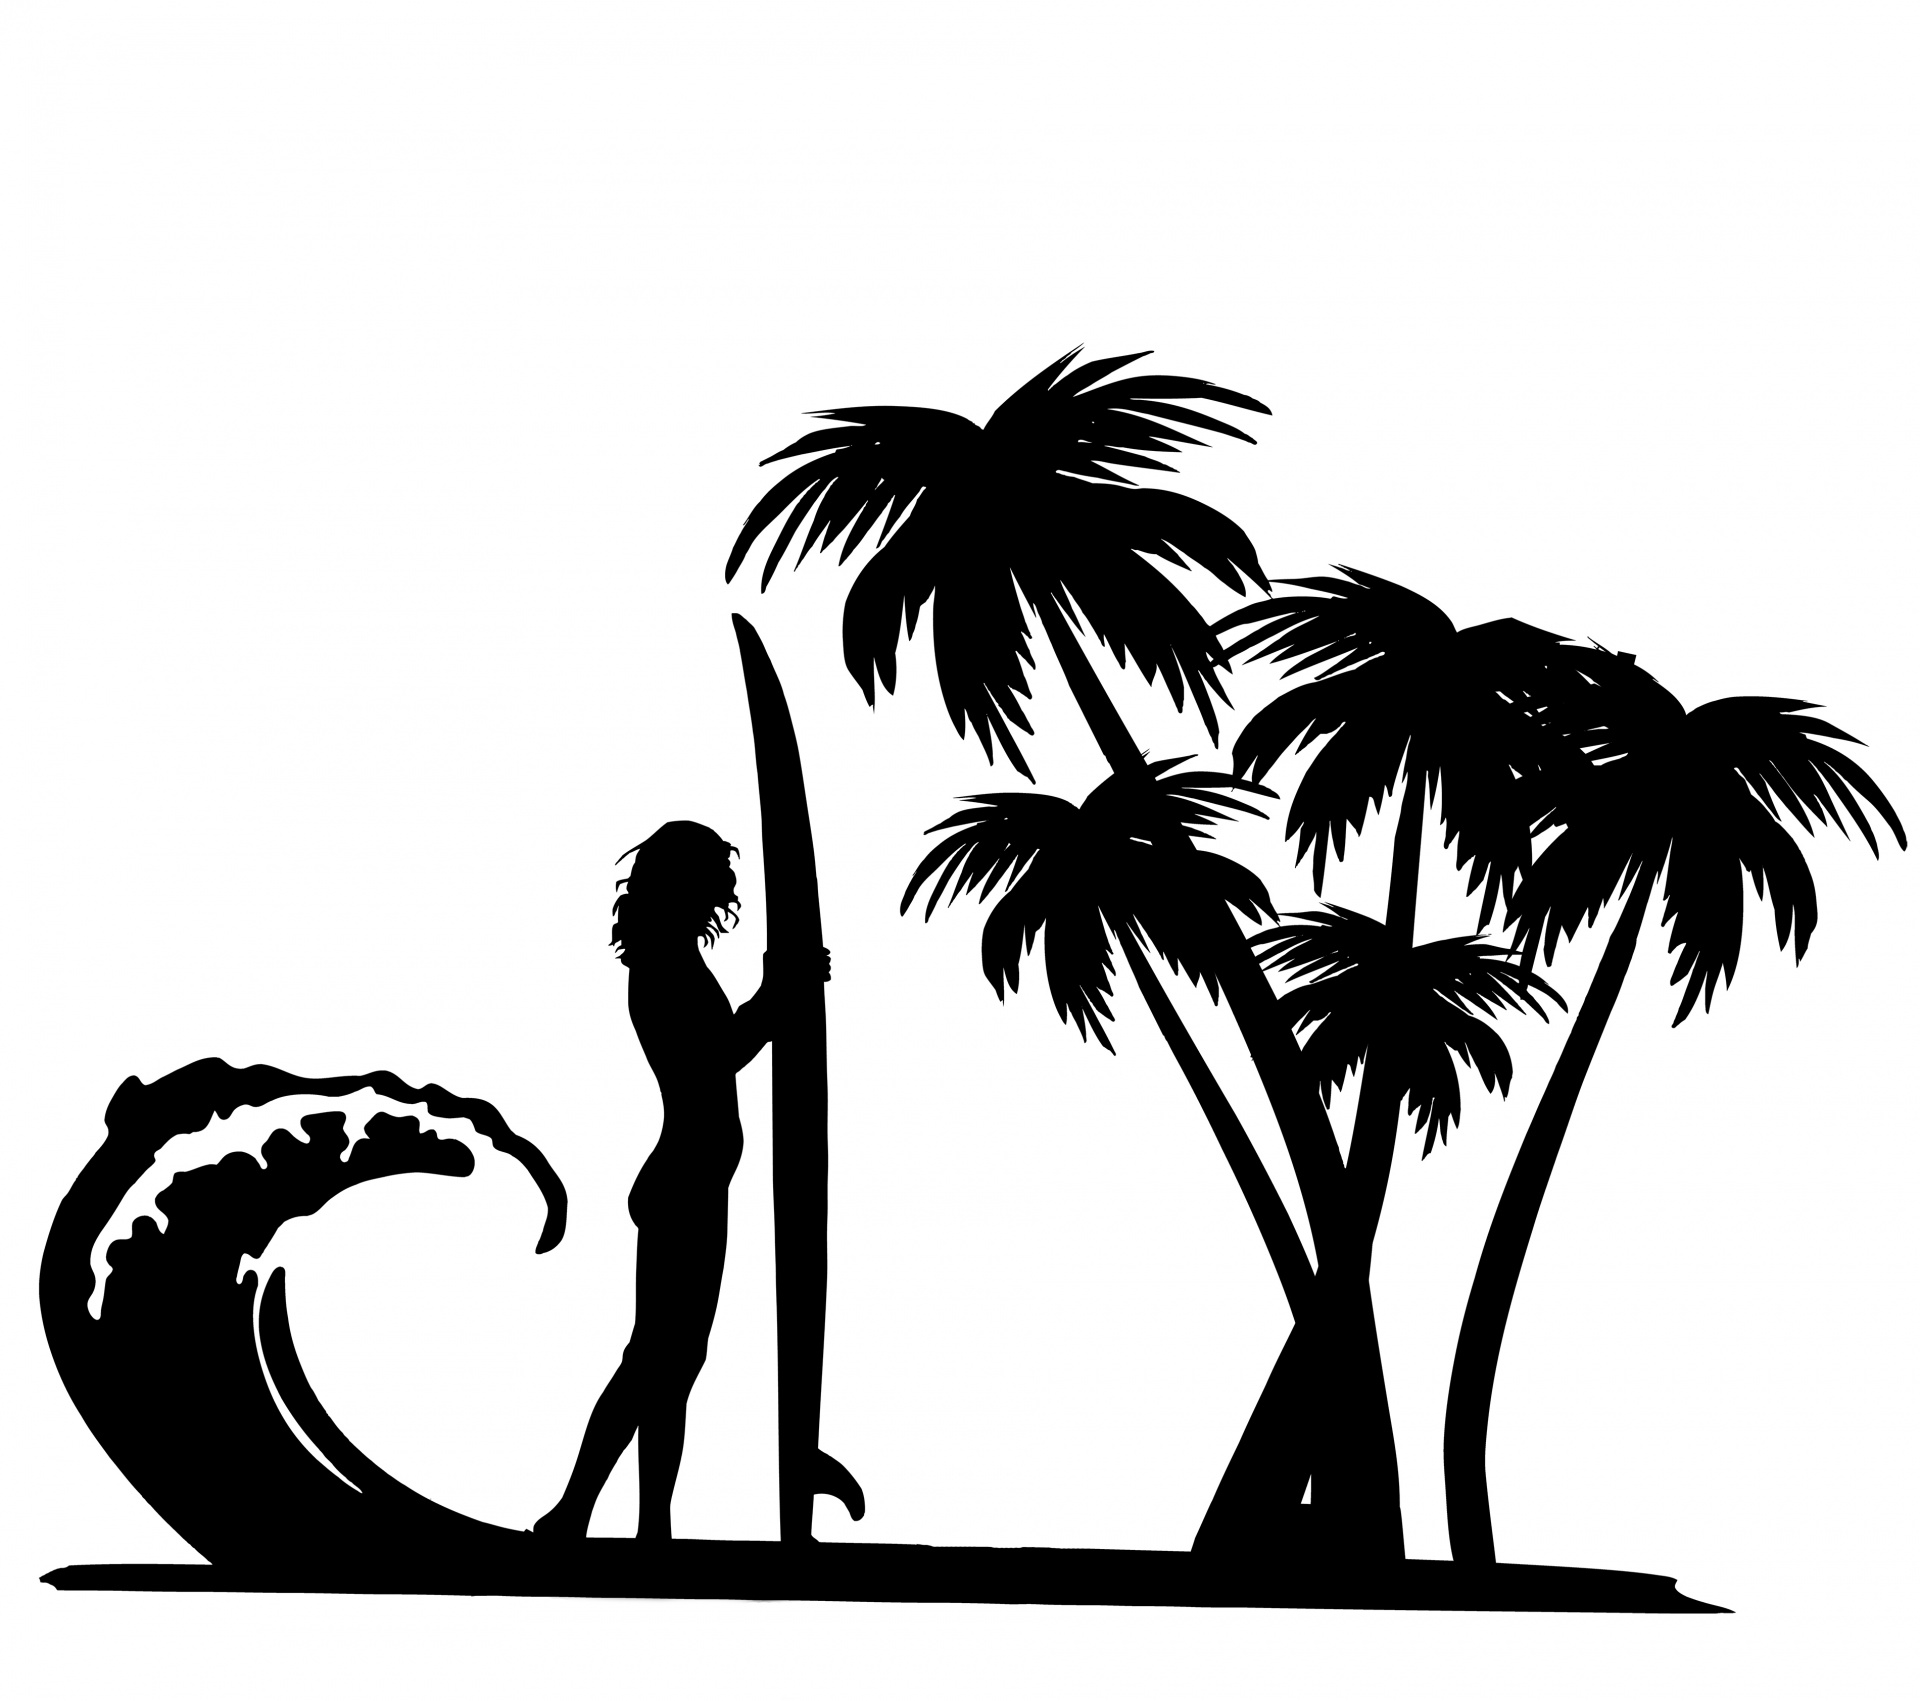 Surfer,surf,board,palm tree,trees.